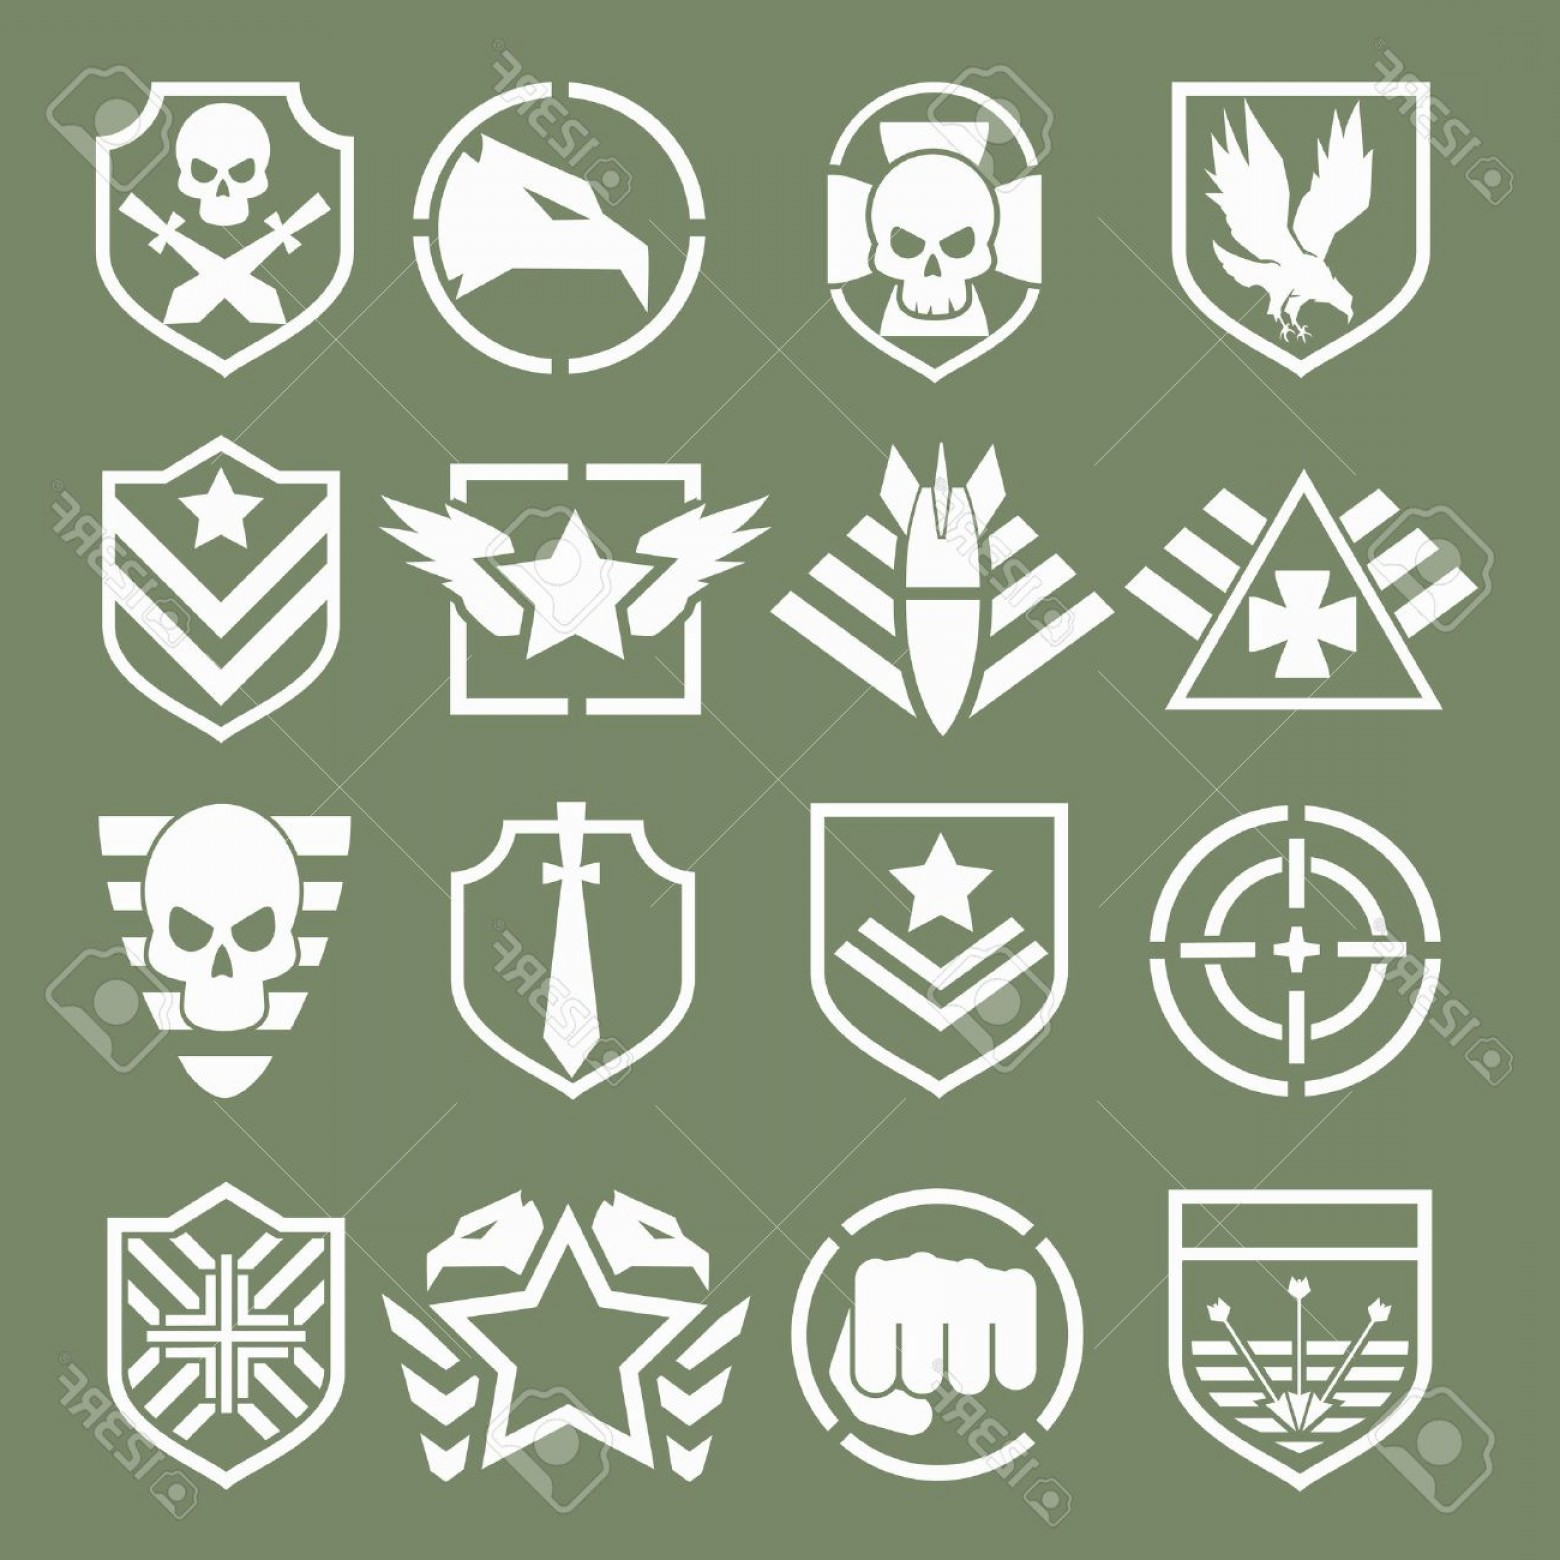 Us Special Forces Vector Files: Photostock Vector Military Logos Of Special Forces Set Army Shield Wing And Skull Vector Illustration